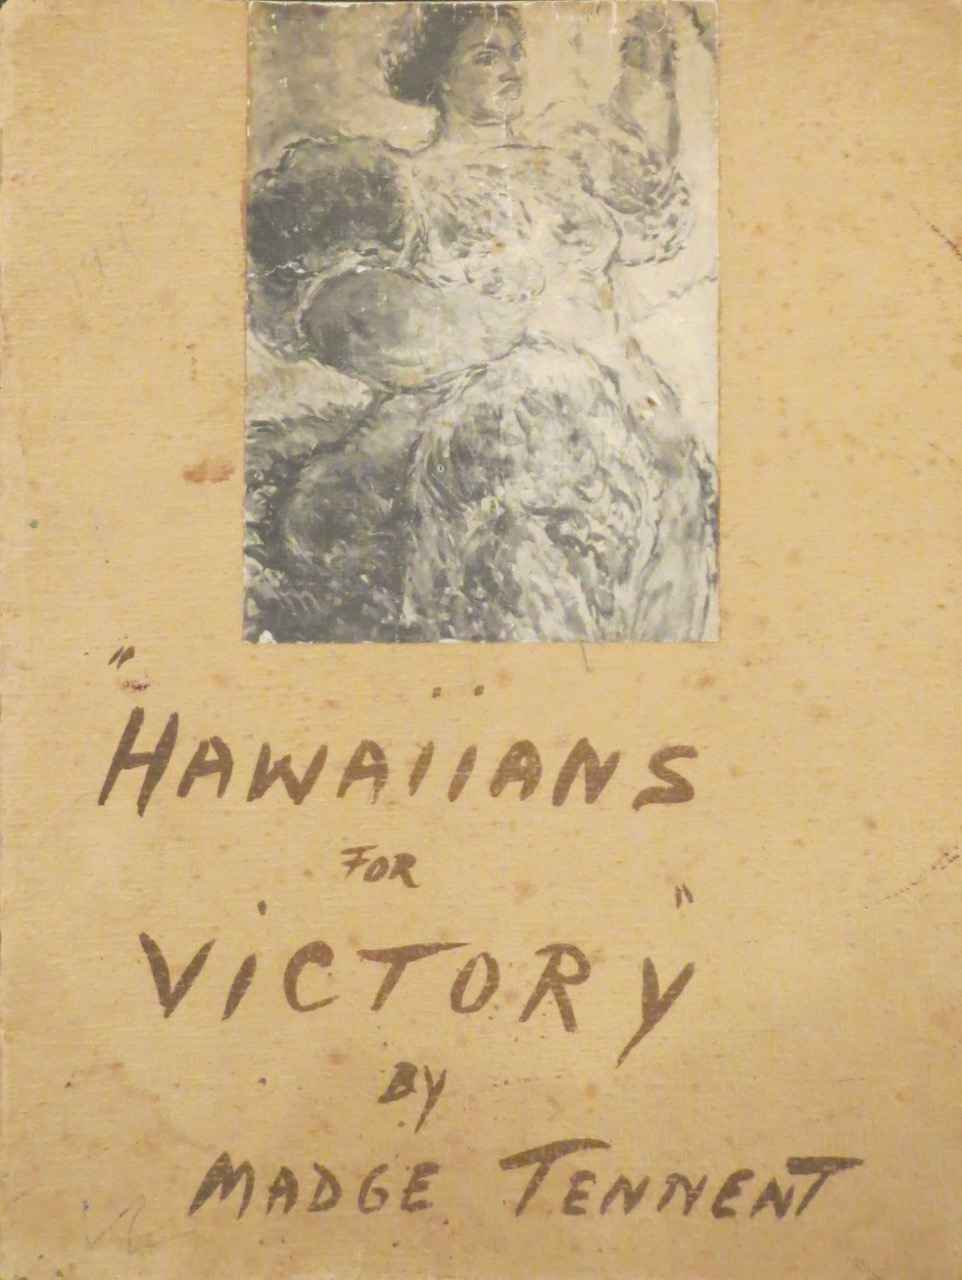 Hawaiians for Victory by  Madge Tennent (1889-1972) - Masterpiece Online